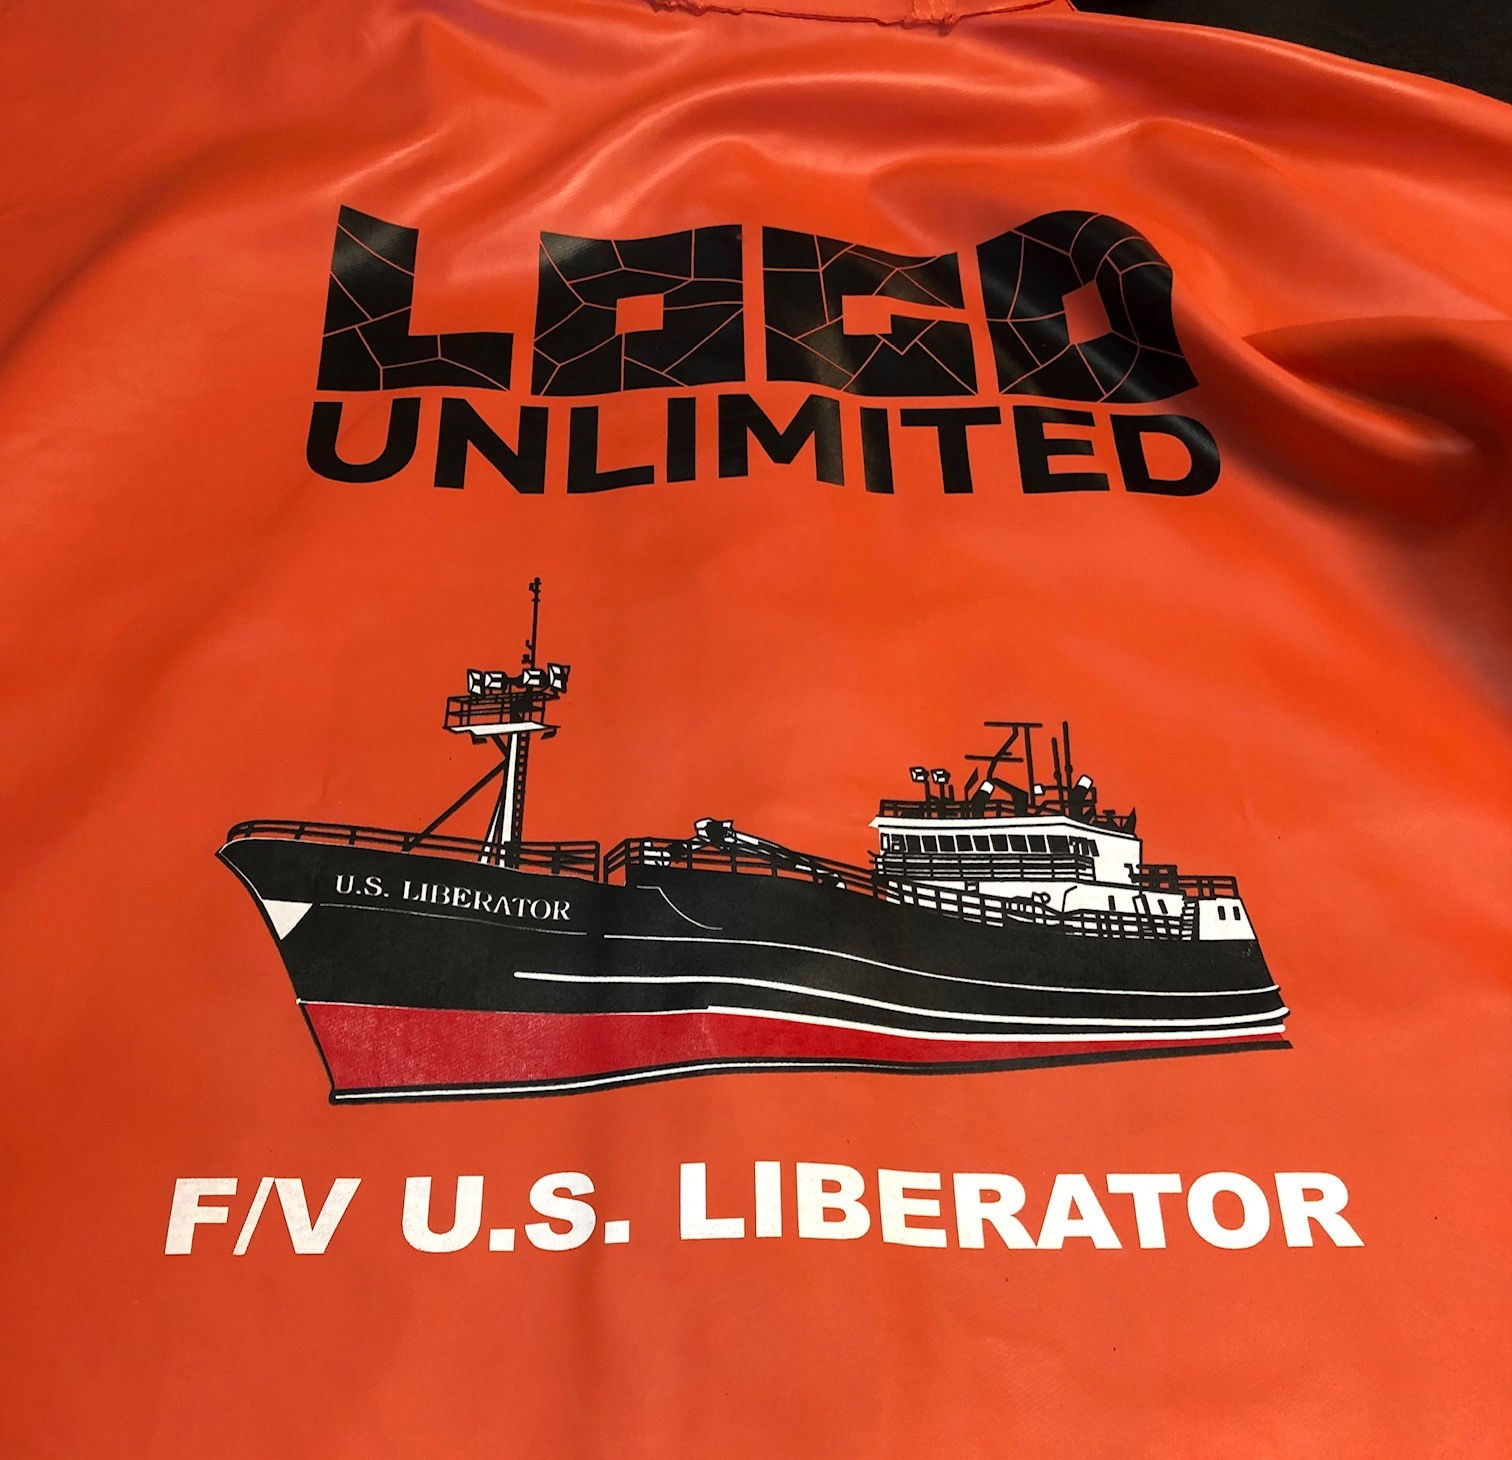 logounltd_laser_etching_embroidery_screen_printing_apparel_uniform_custom_tshirts_kirkland_bellevue_seattle_redmond_woodinville_branded_merchandise_promotional_products_logo_unltd_grundens_alaska_fishing (2).jpg